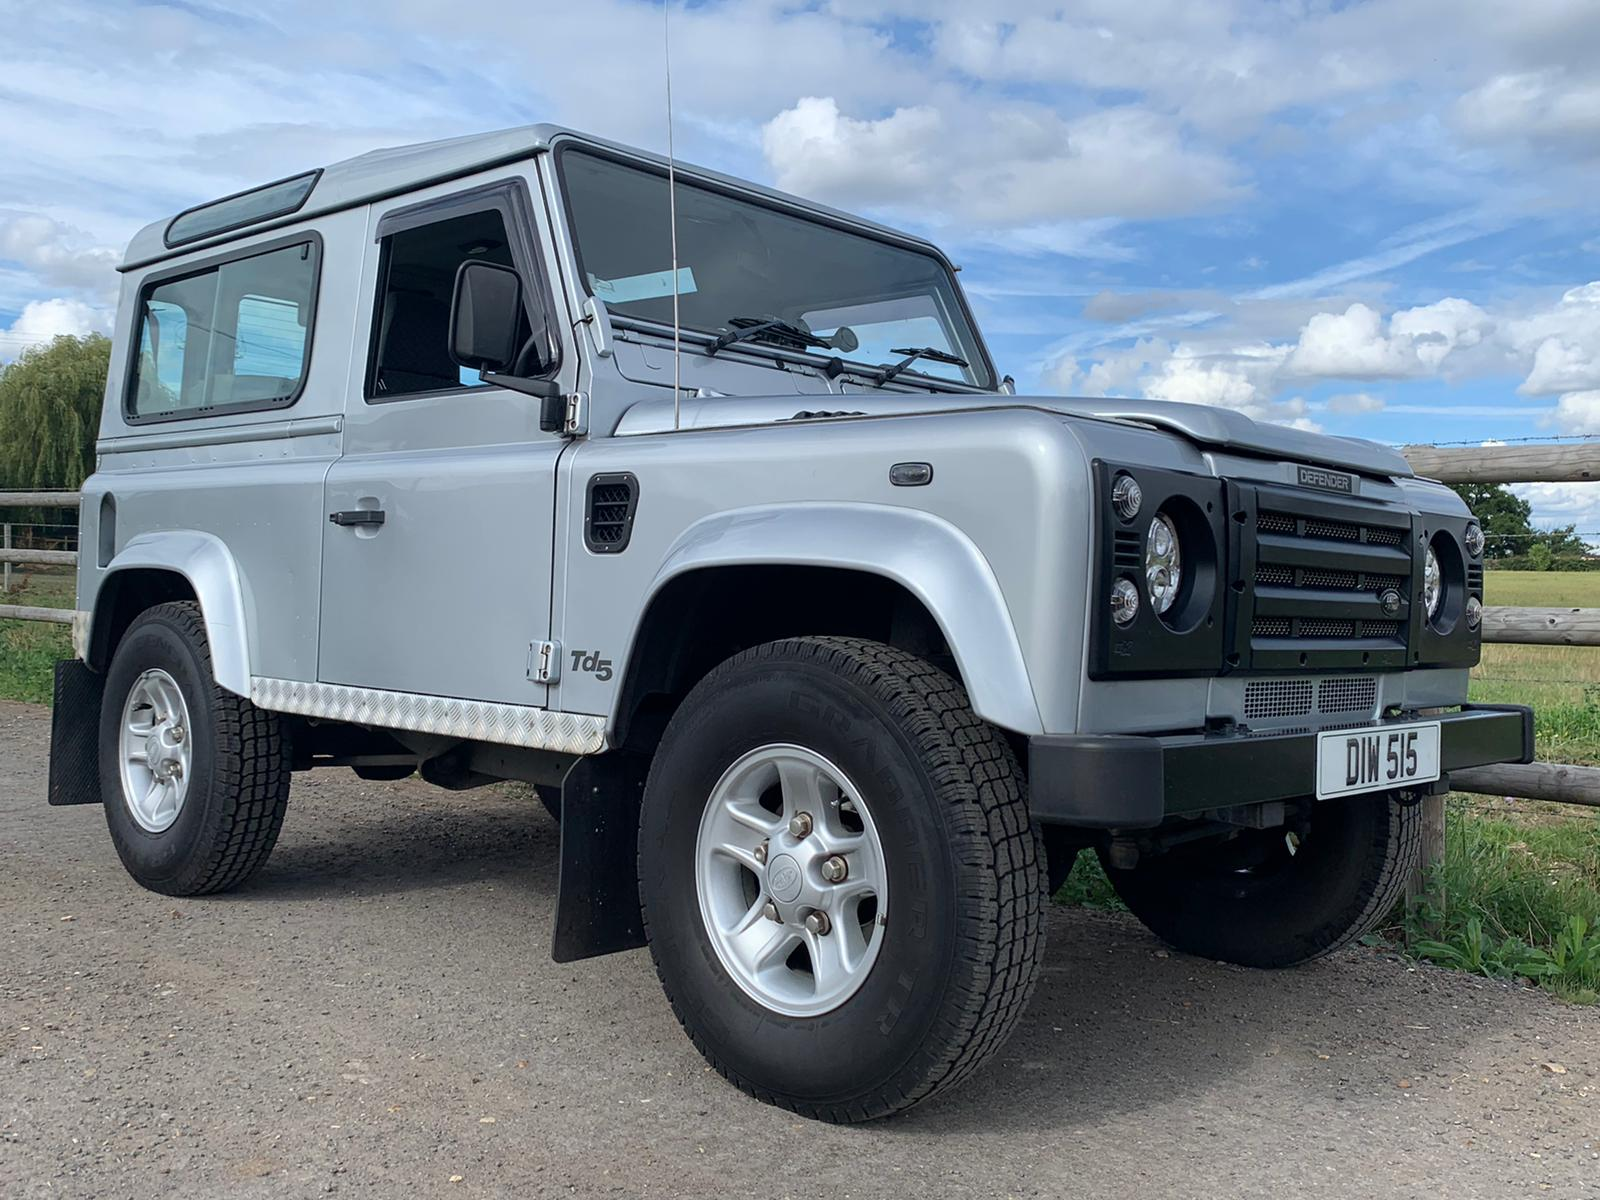 2006 Defender 90 TD5 County Station Wagon